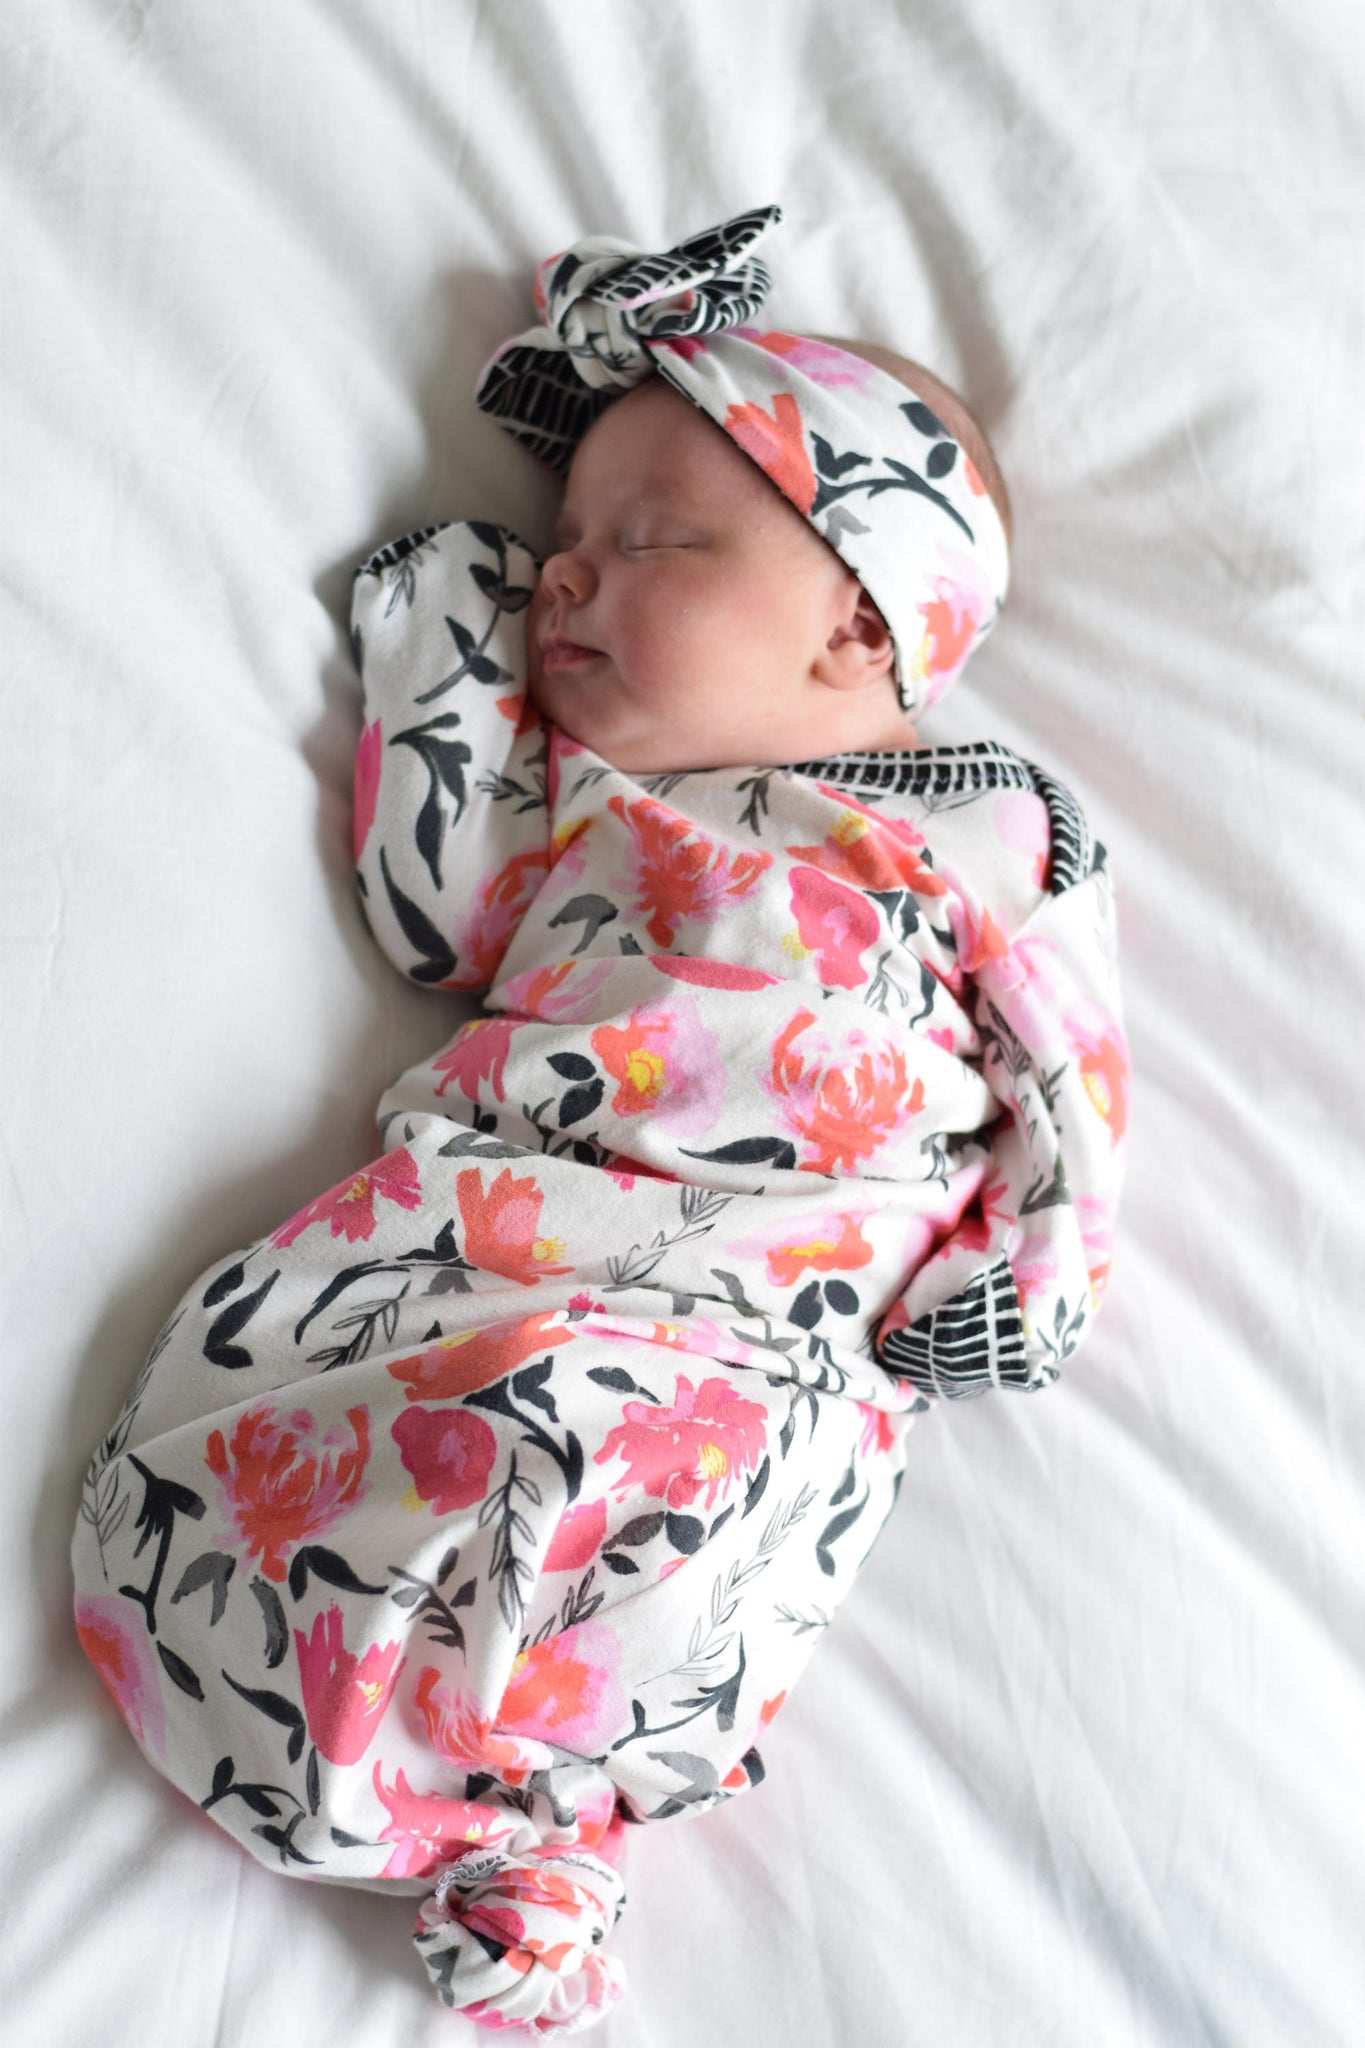 pinterest-newborn-baby-girl-photos-sweet-infant-sleeping-in-pink-black-knotted-gown